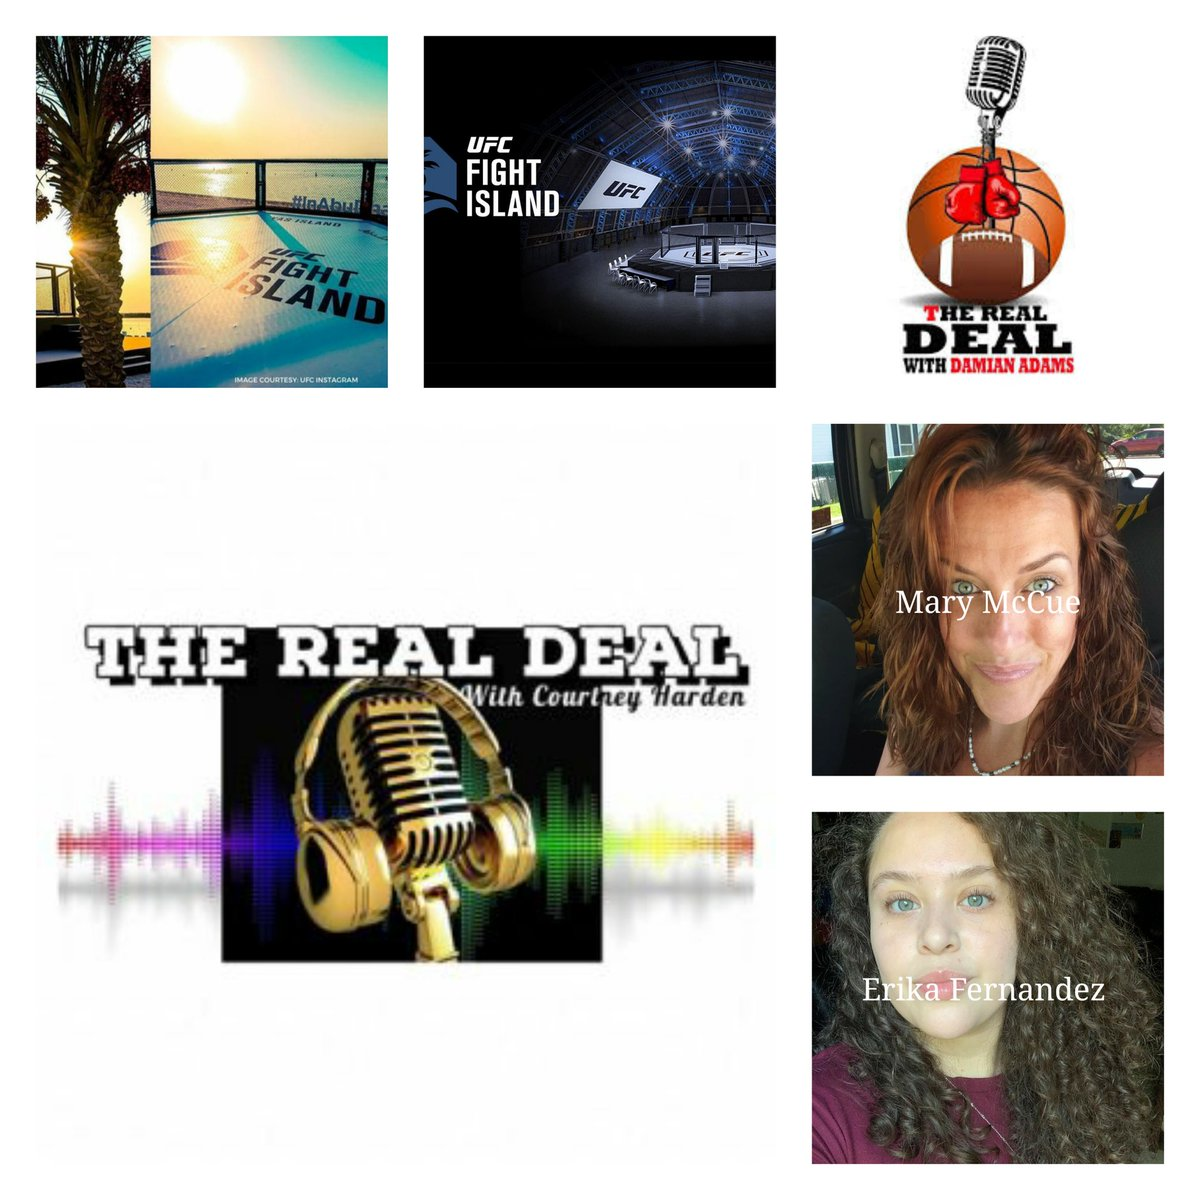 @gettherealdeal Ep 36 airs this Saturday 12PM EST with special guests 12:00 Mary McCue 1:00 @CurlsAndSports 1:30 @TheRealDealwDA #UFCFightIsland #UFC251 #BS3RADIO @BS3Radio Tune in here spreaker.com/show/the-real-…